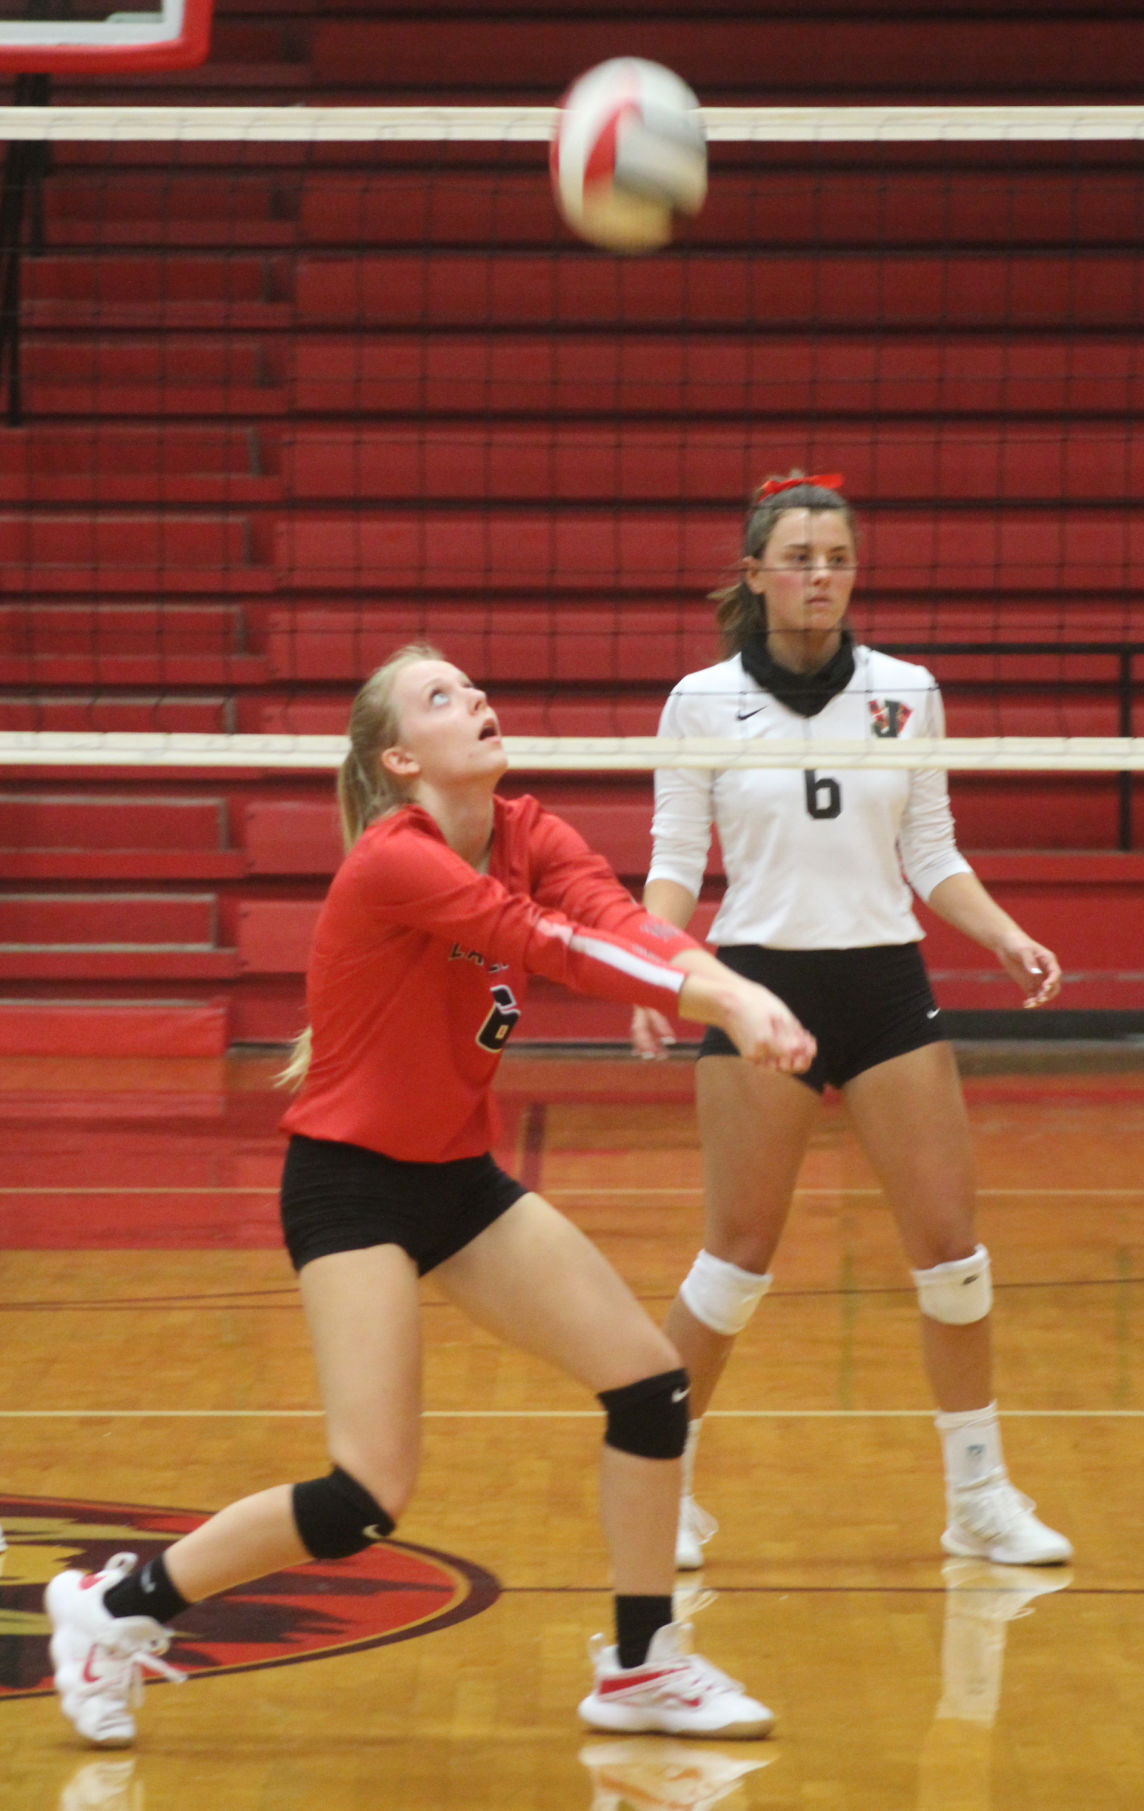 Searcy's Karlie Hite sets the ball against Jonesboro